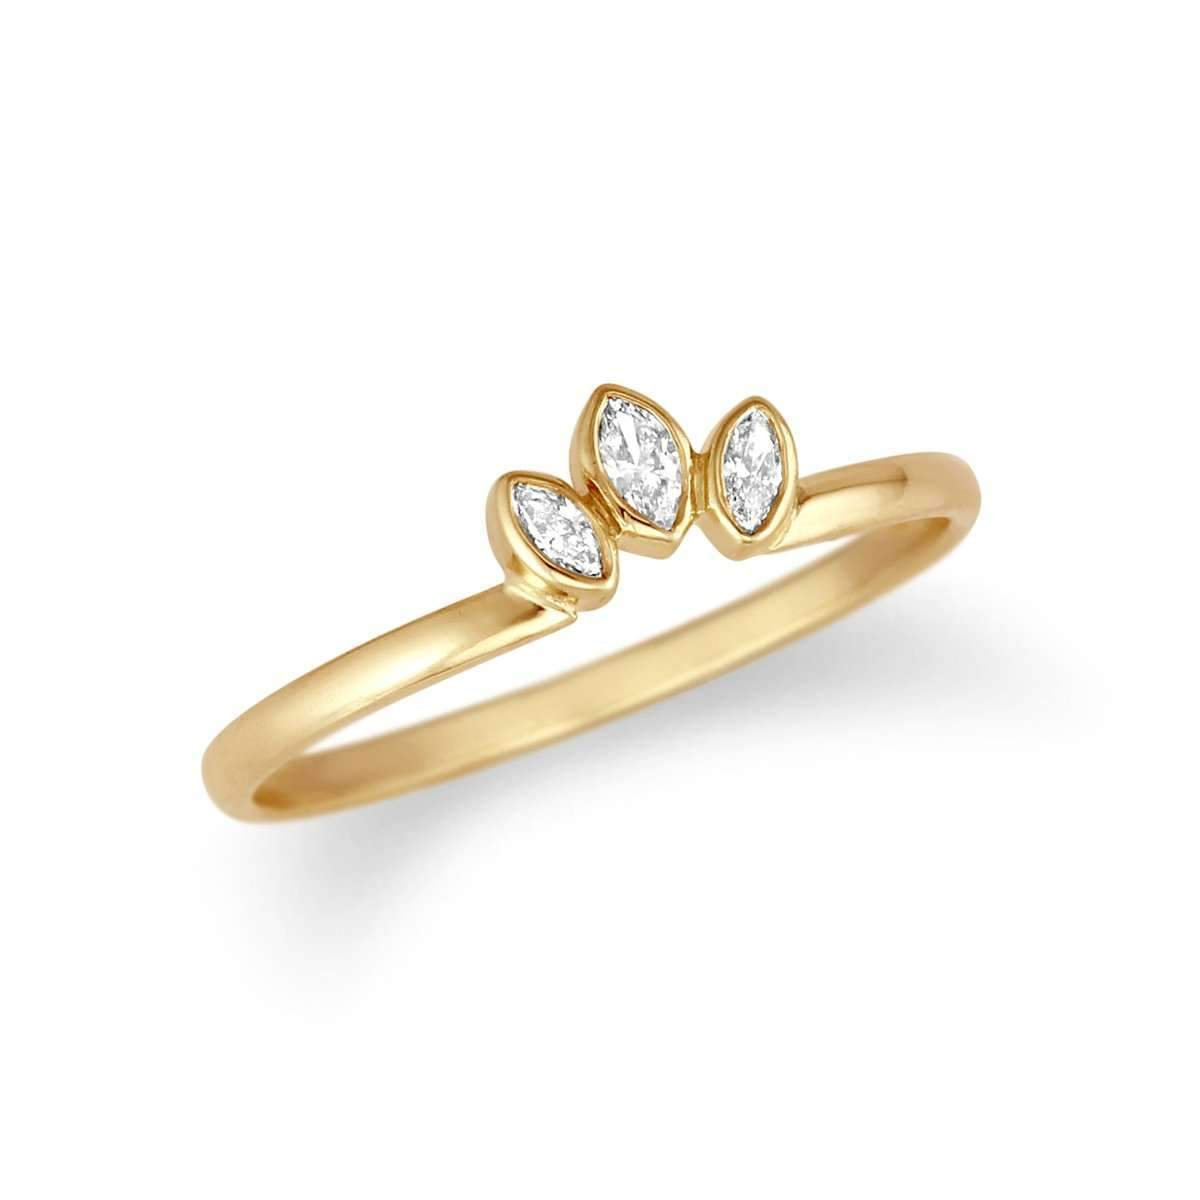 Petite Marquise Diamond Ring Enhancer-Alysha Whitfield